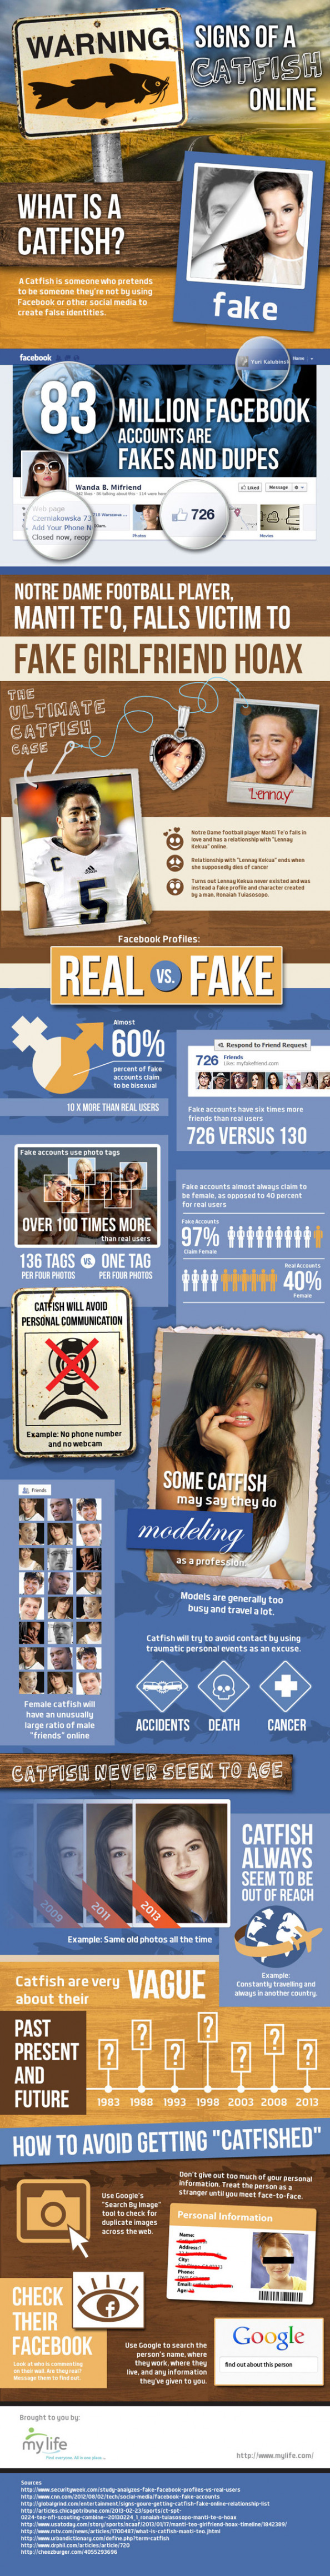 Warning Sign of a Catfish Online Infographic